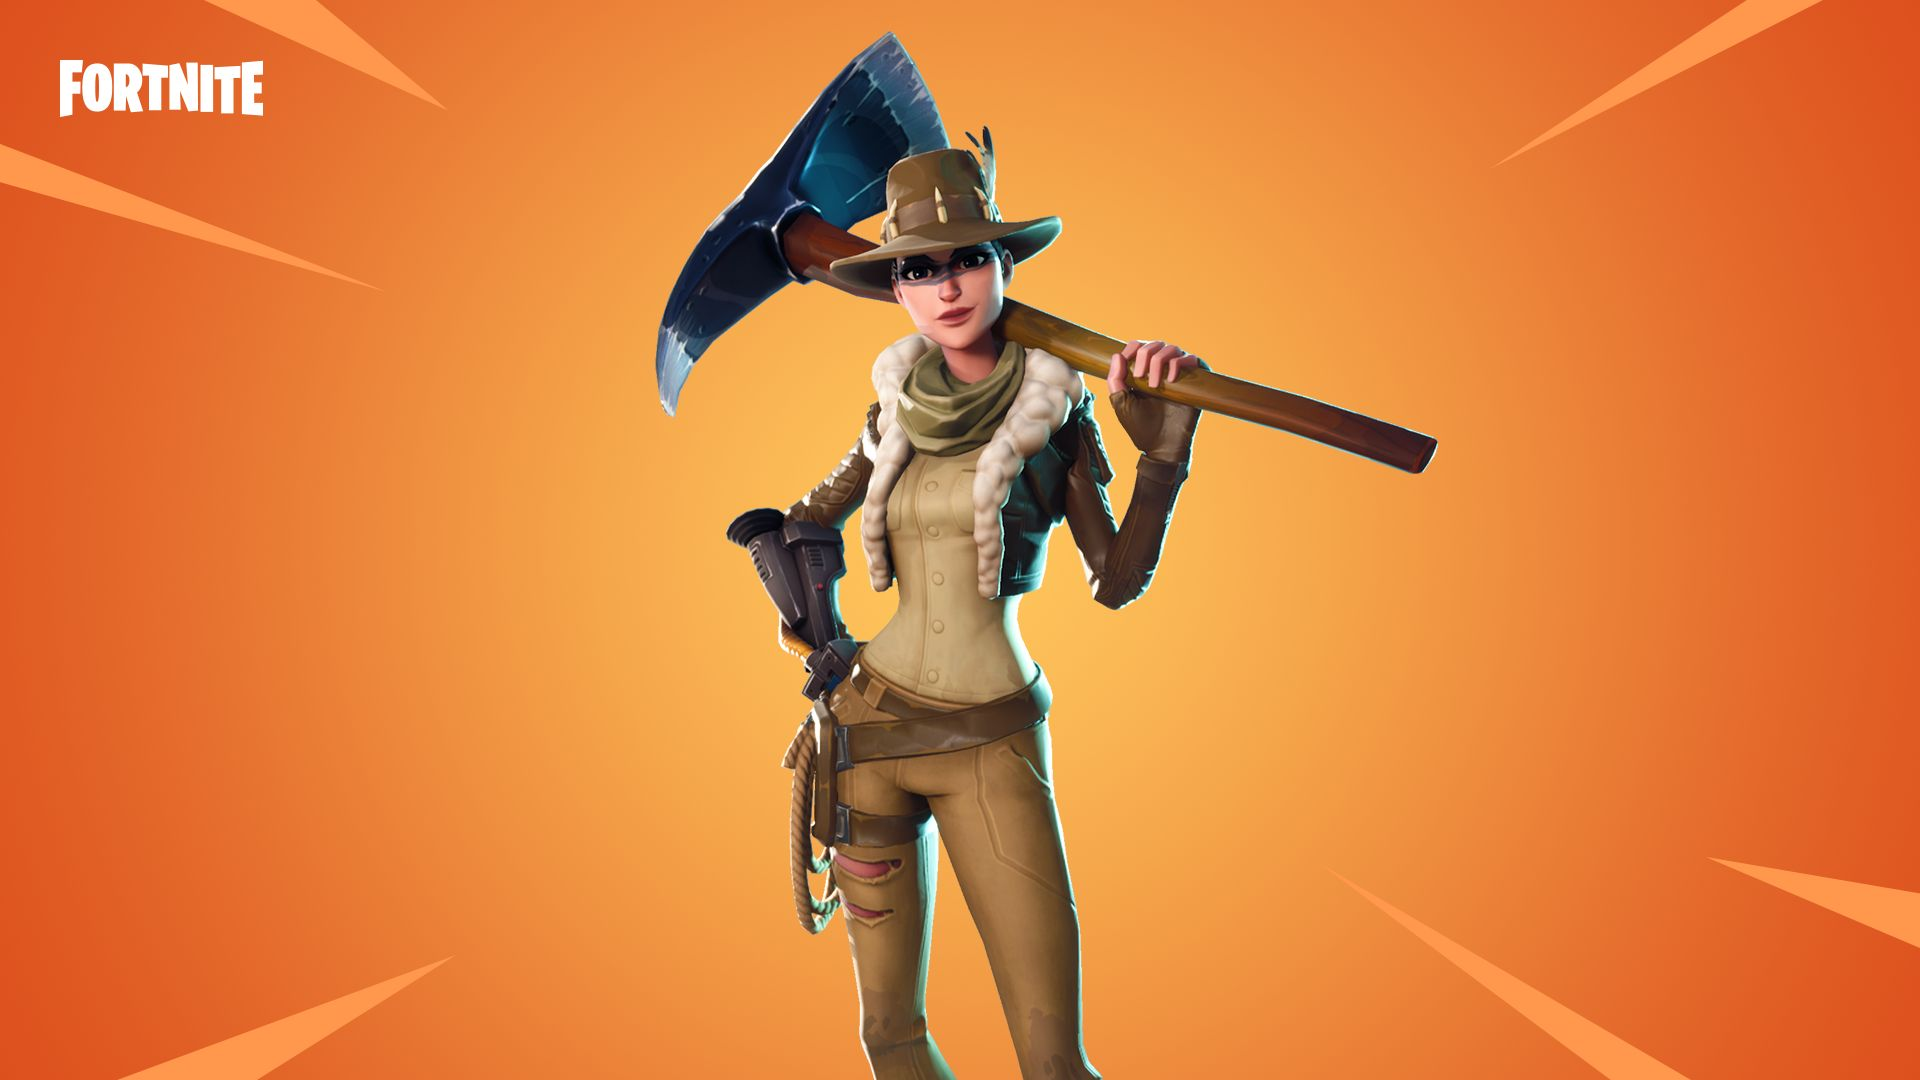 Epic is once again warning fortnite players about free v bucks scams epic is once again warning fortnite players about free v bucks scams vg247 stopboris Images